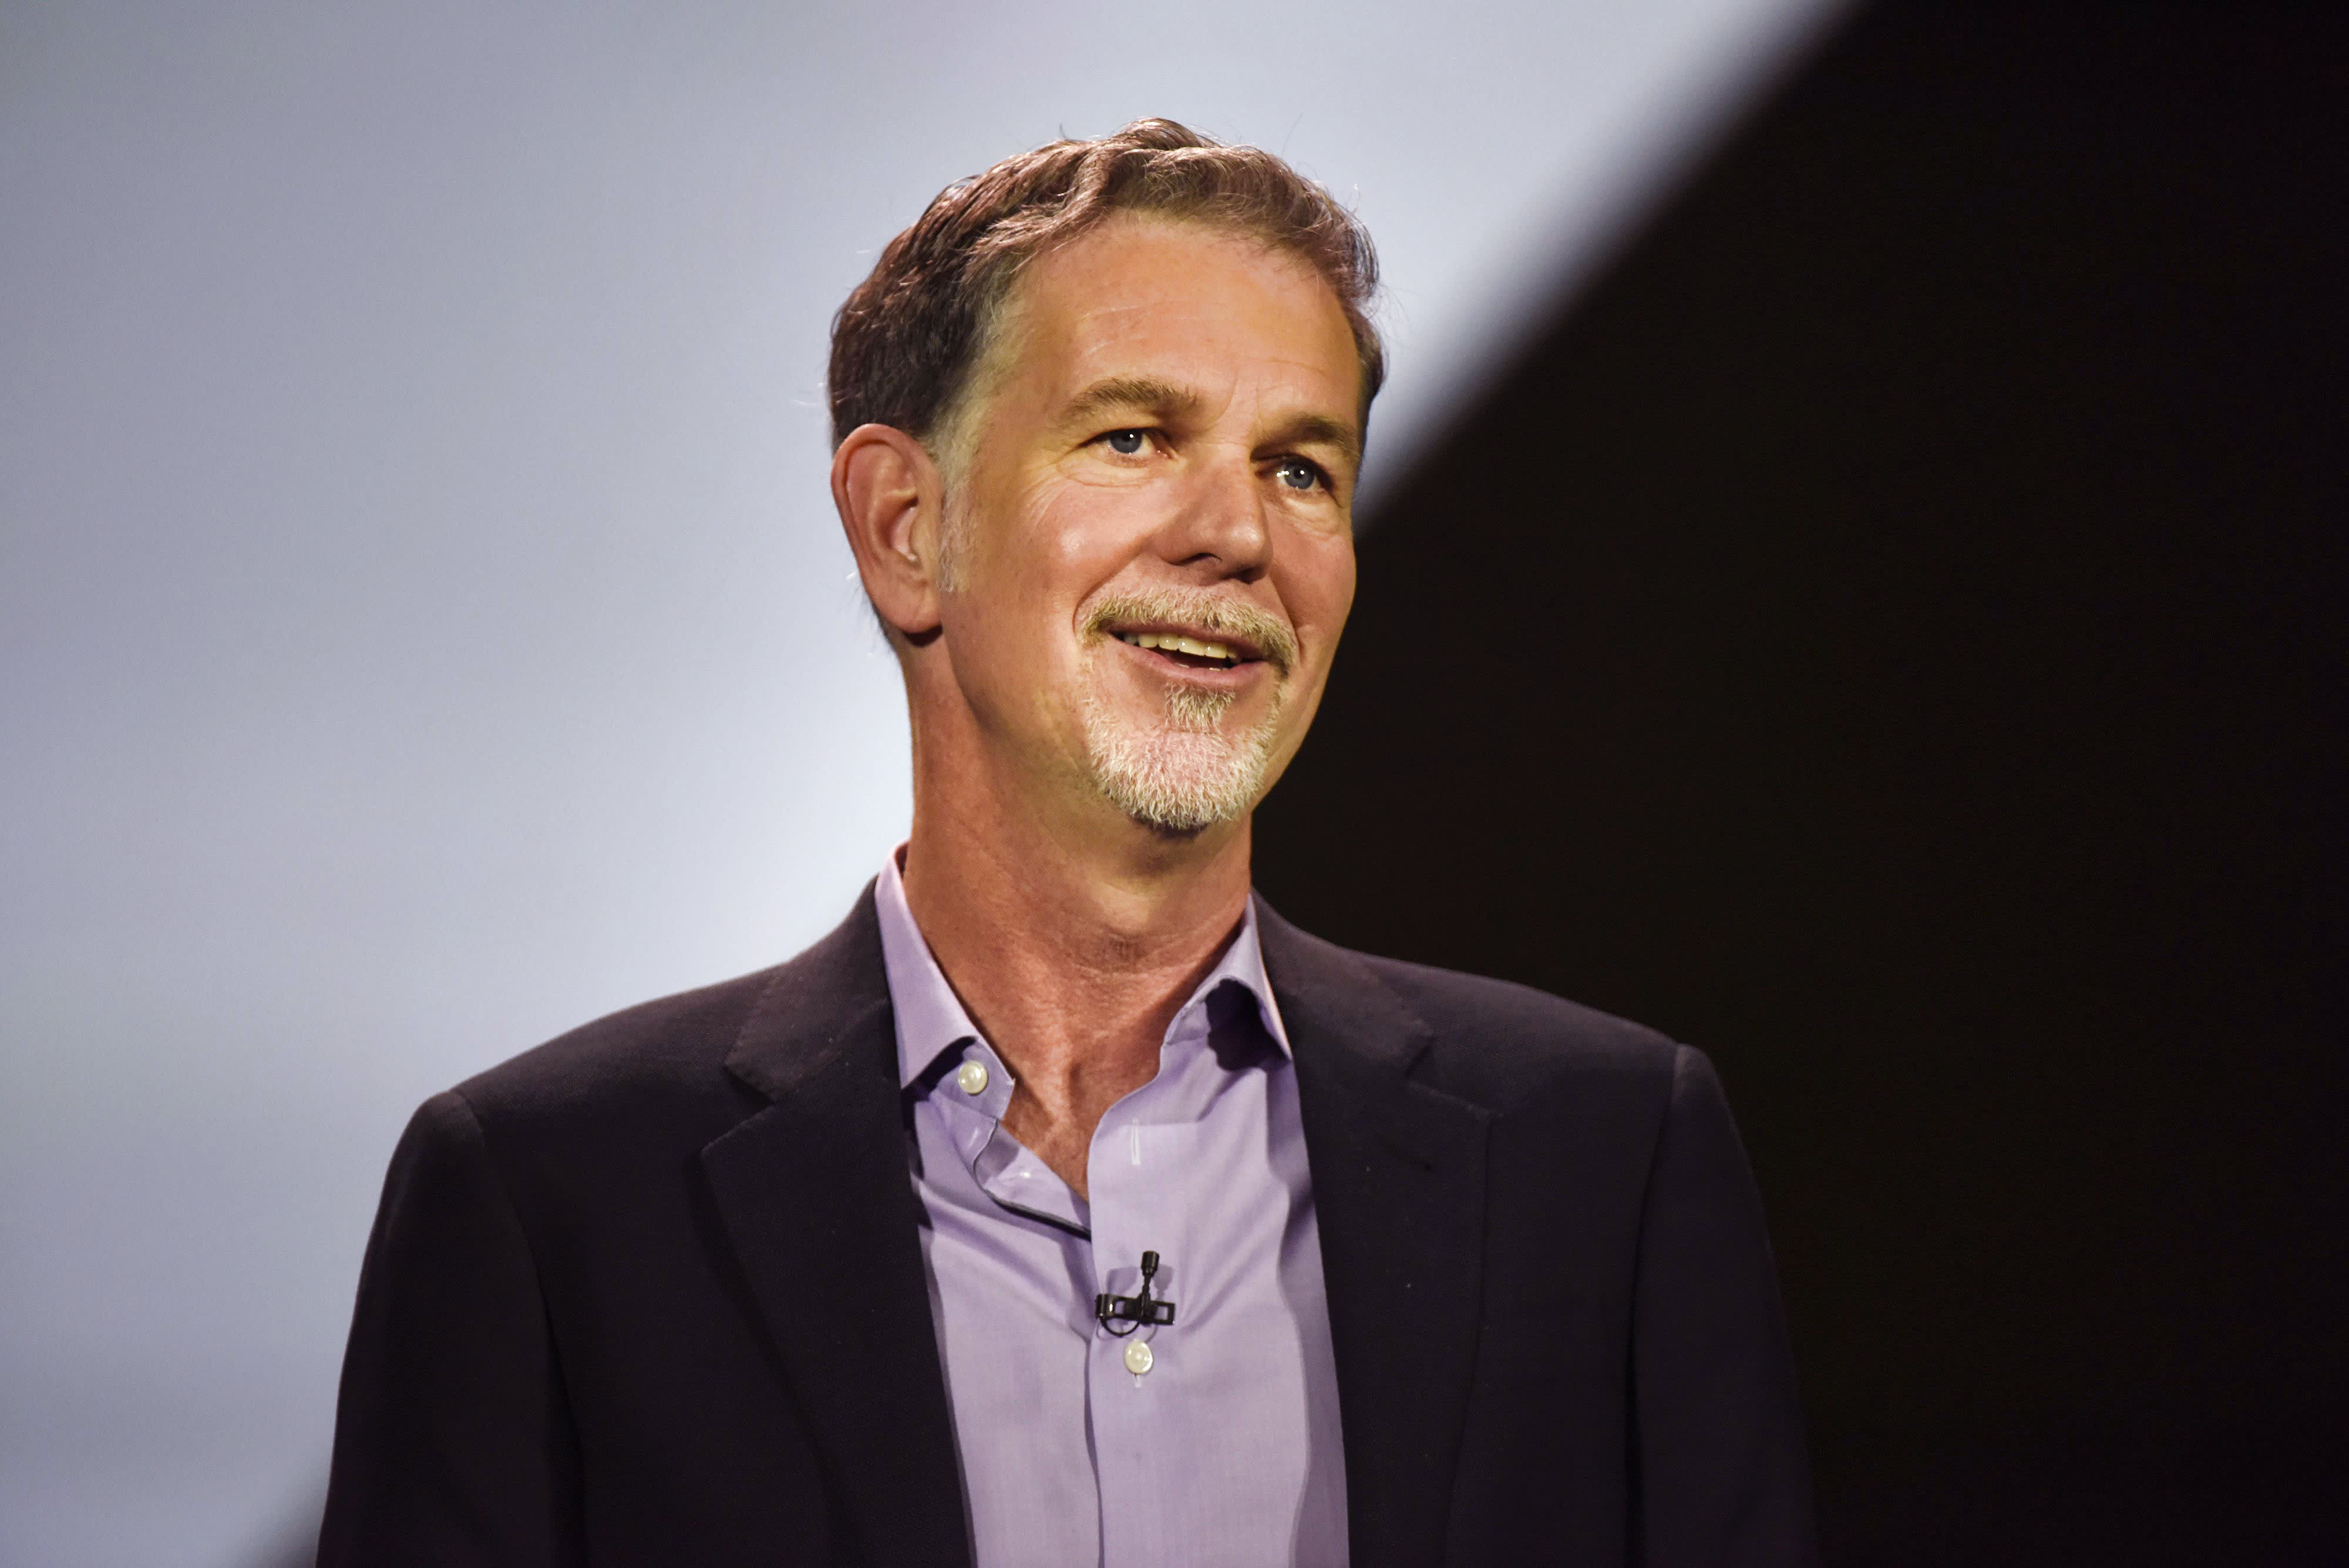 Netflix will weather onslaught of new streaming services, says Goldman